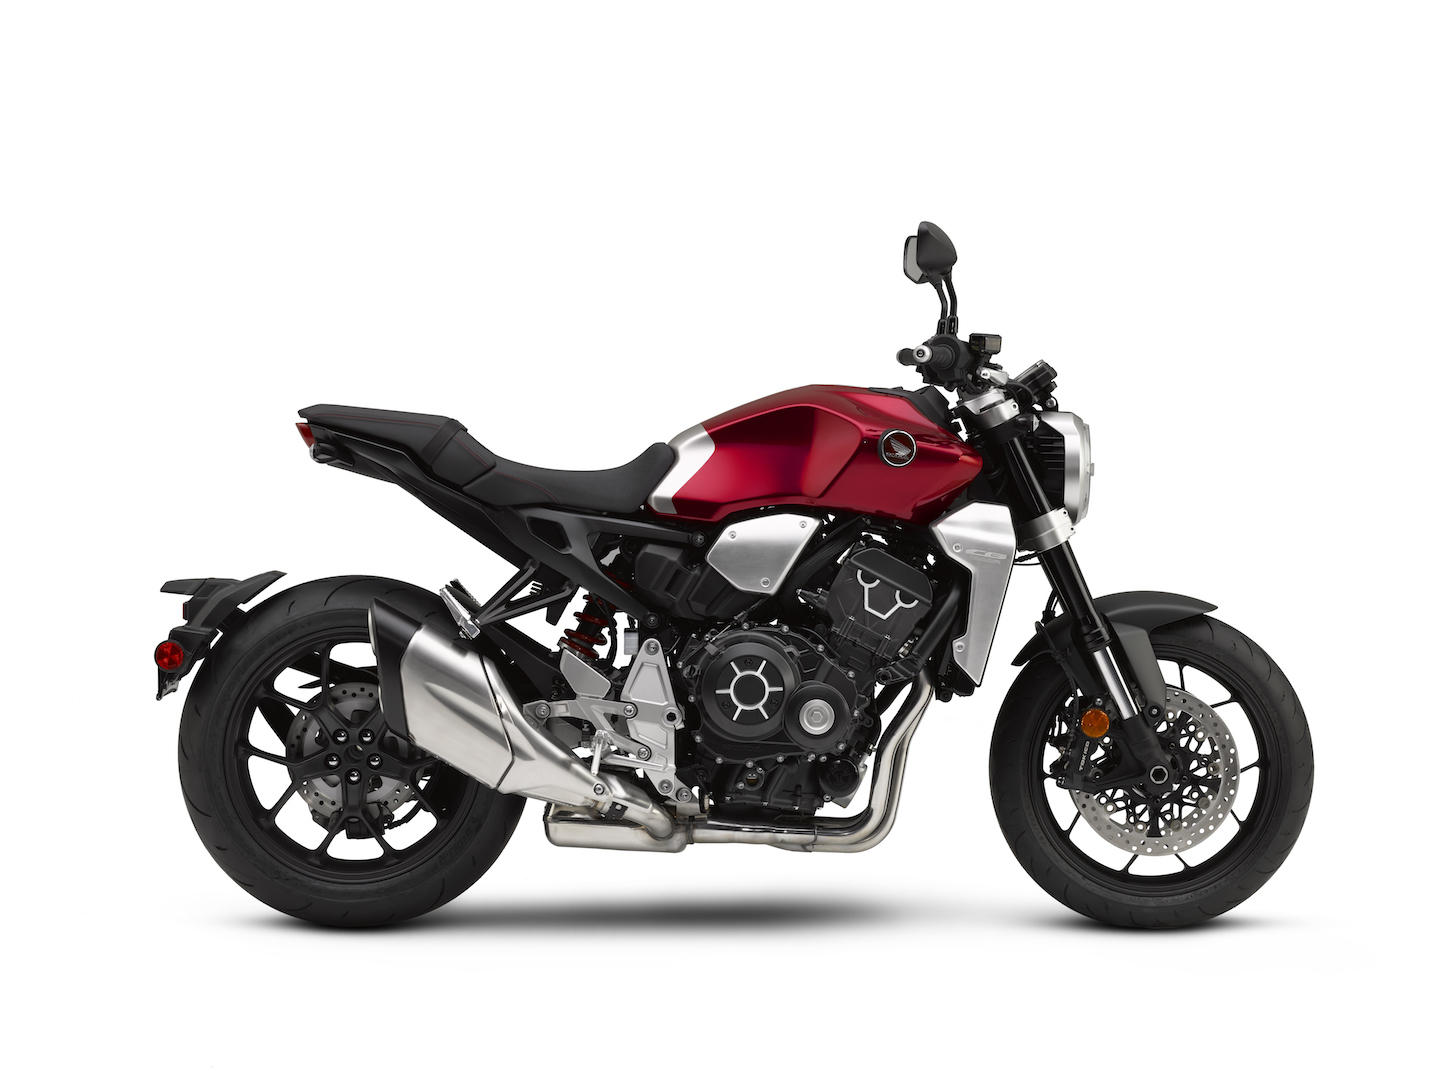 New Honda Motorcycles New Honda Bike Models Cycle World